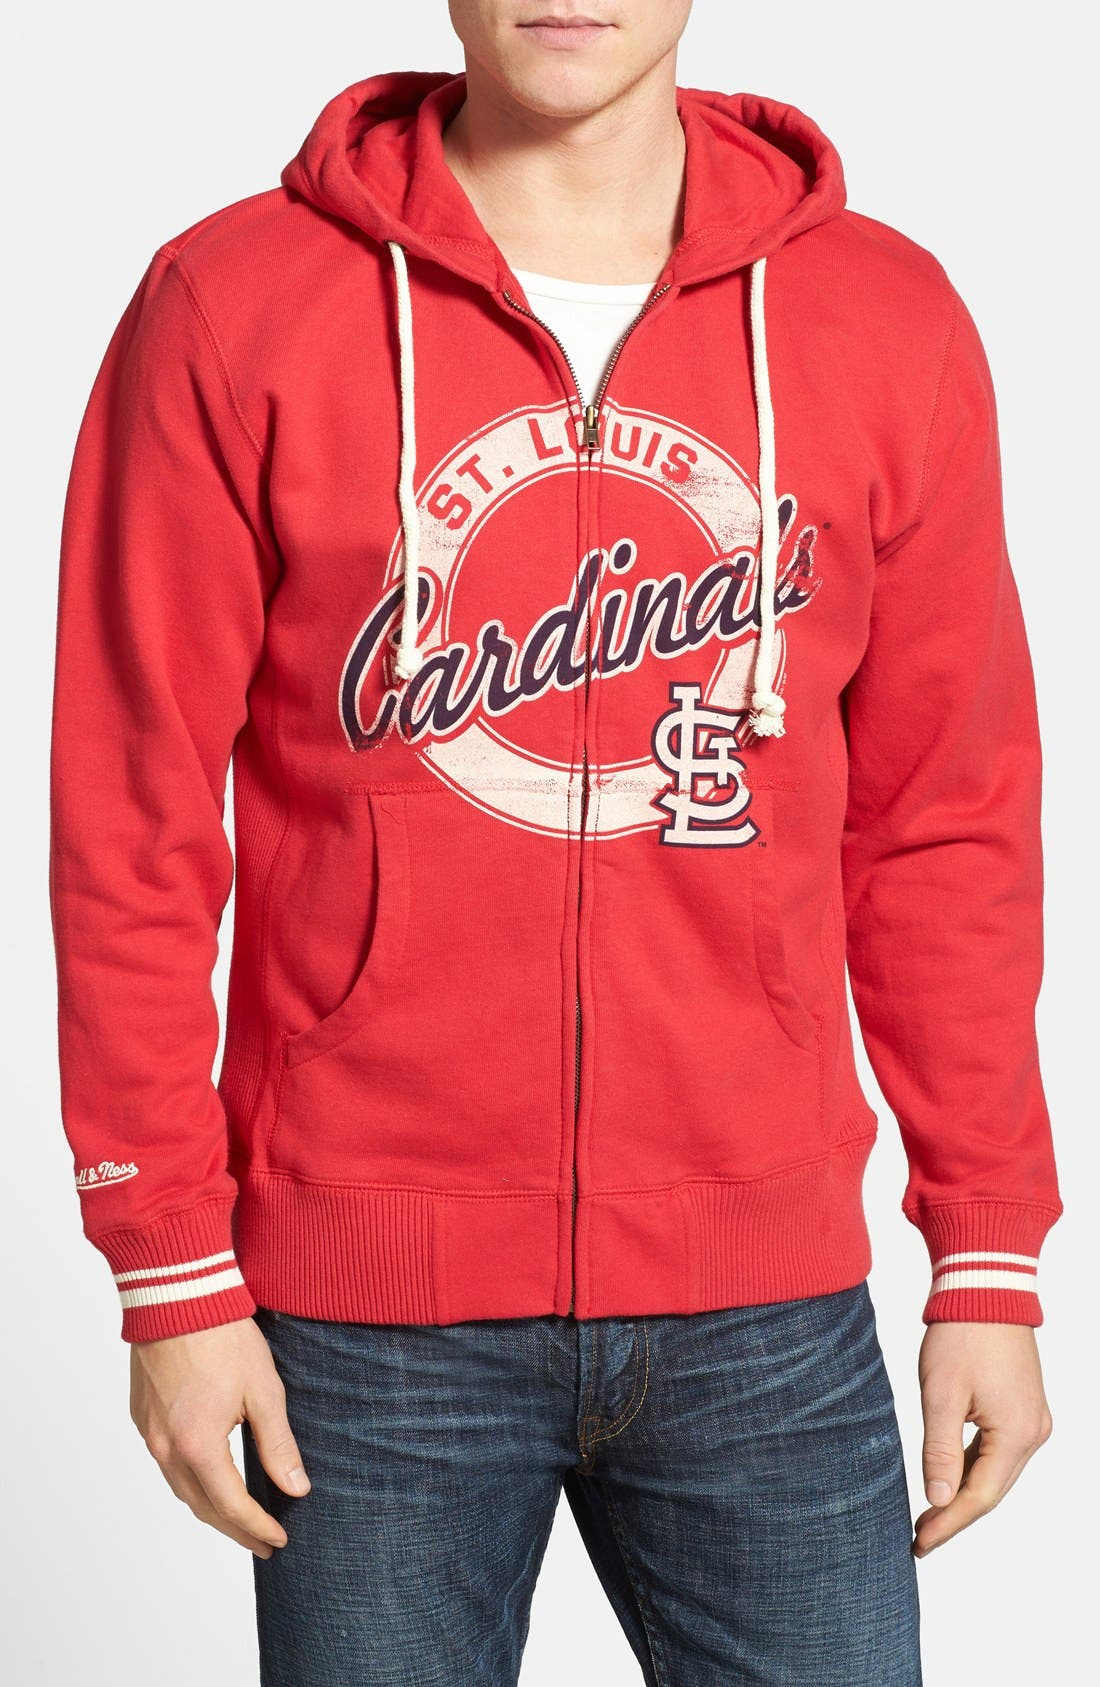 Alternate Image 1 Selected - Mitchell & Ness 'St. Louis Cardinals' Full Zip Hoodie